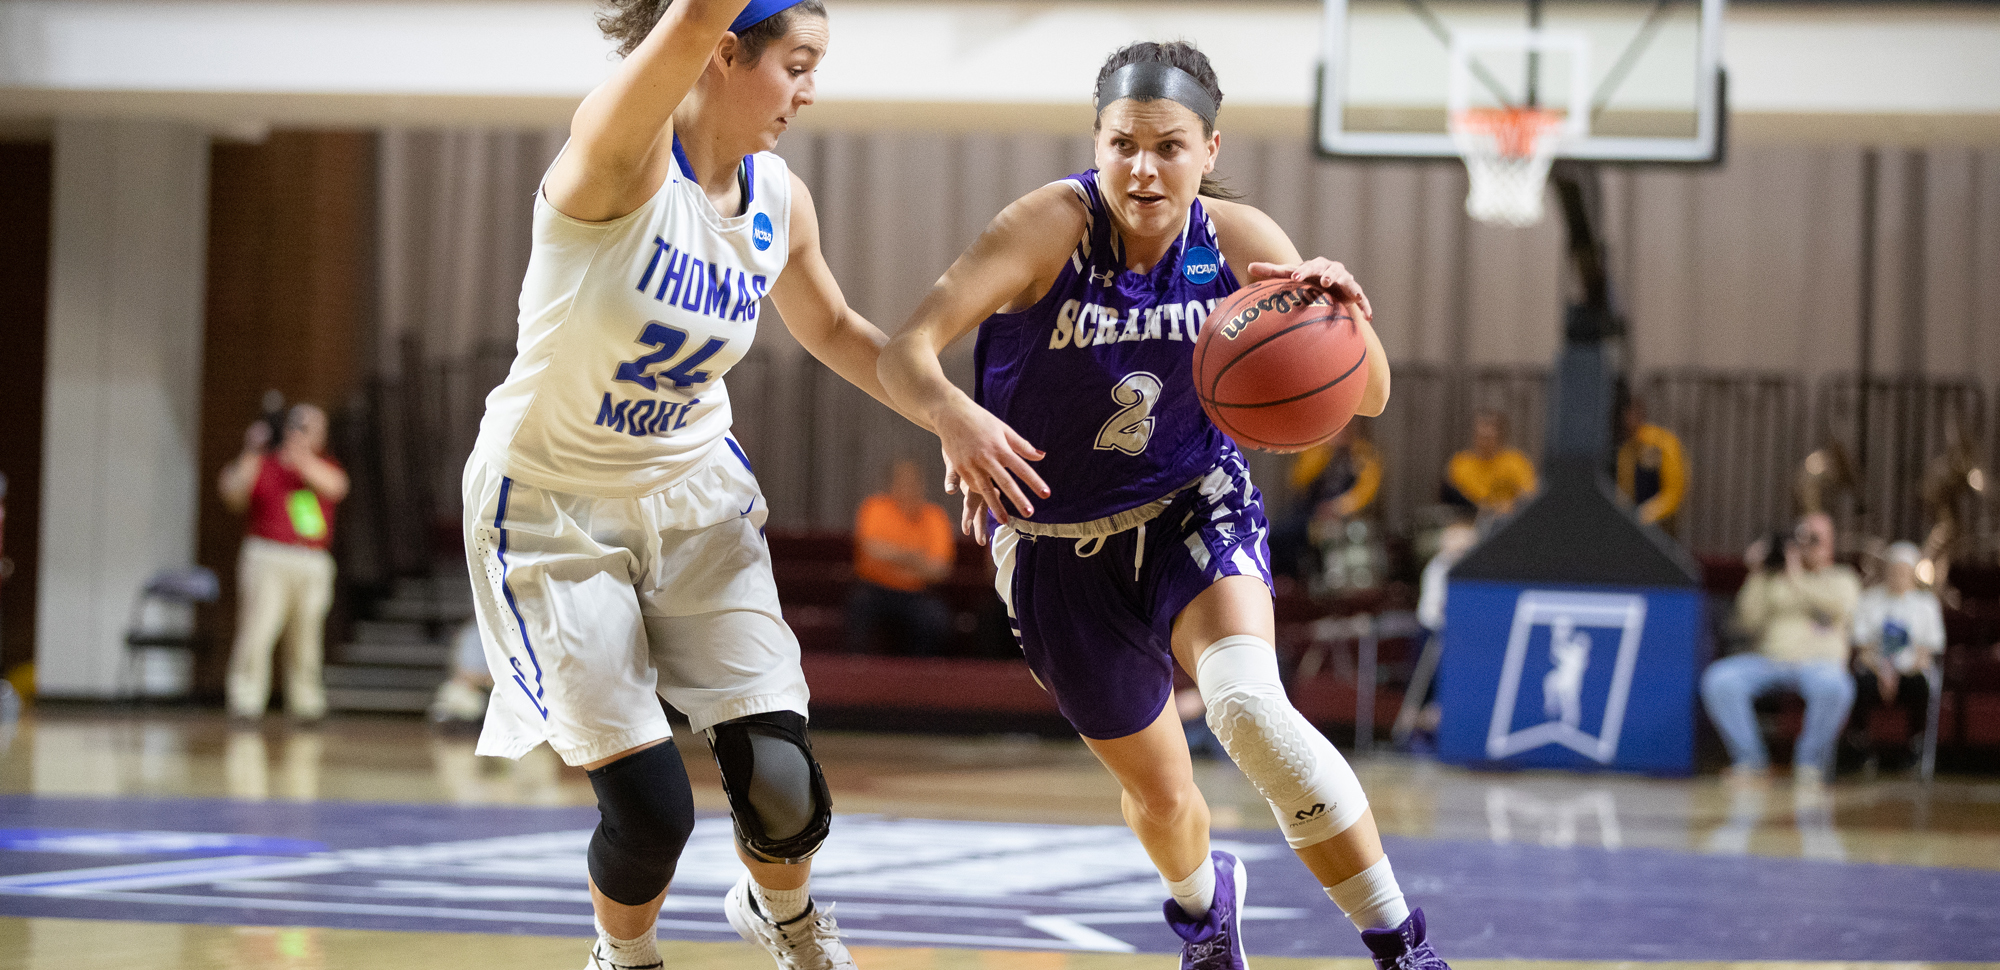 Senior guard Emily Sheehan hit four threes as The University of Scranton women's basketball team picked up a 78-42 win over Wilkes on Sunday.